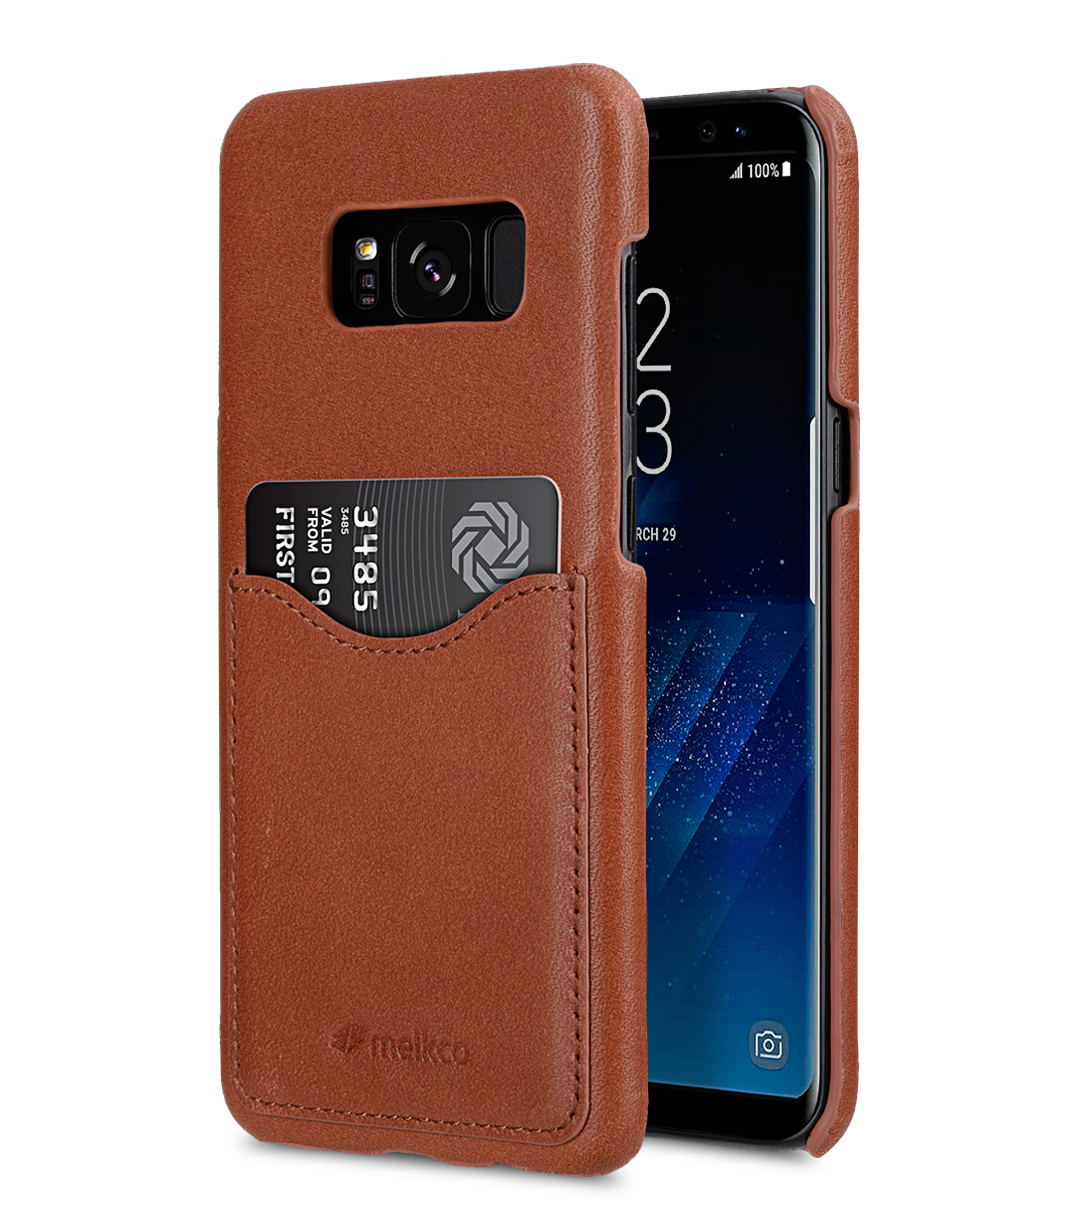 the best attitude 58f2d 048c9 Premium Leather Case for Samsung Galaxy S8 - Card Slot Back Cover